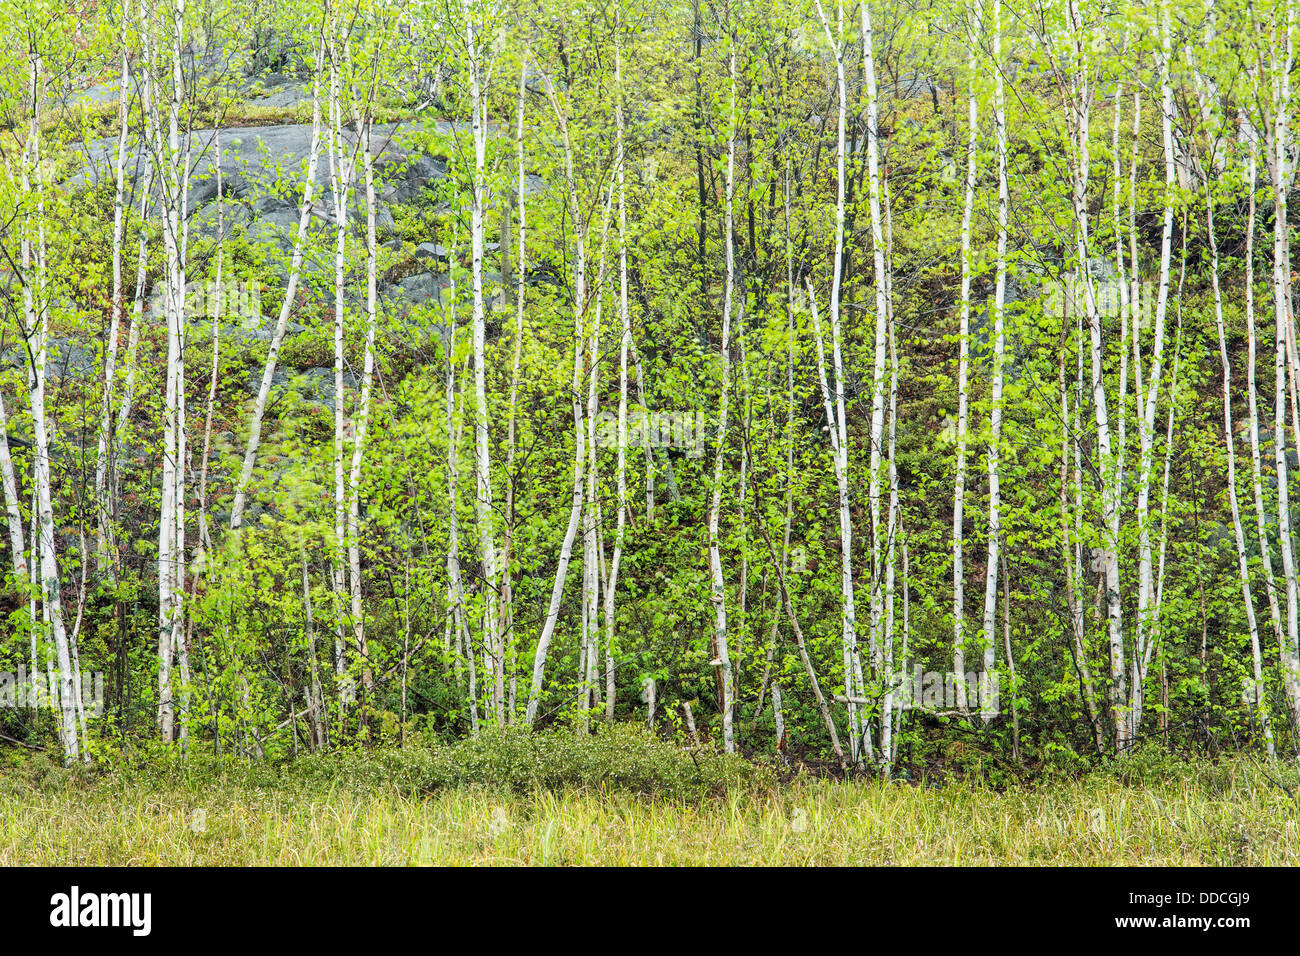 A stand of birch trees in spring, Lively, Ontario, Canada. - Stock Image